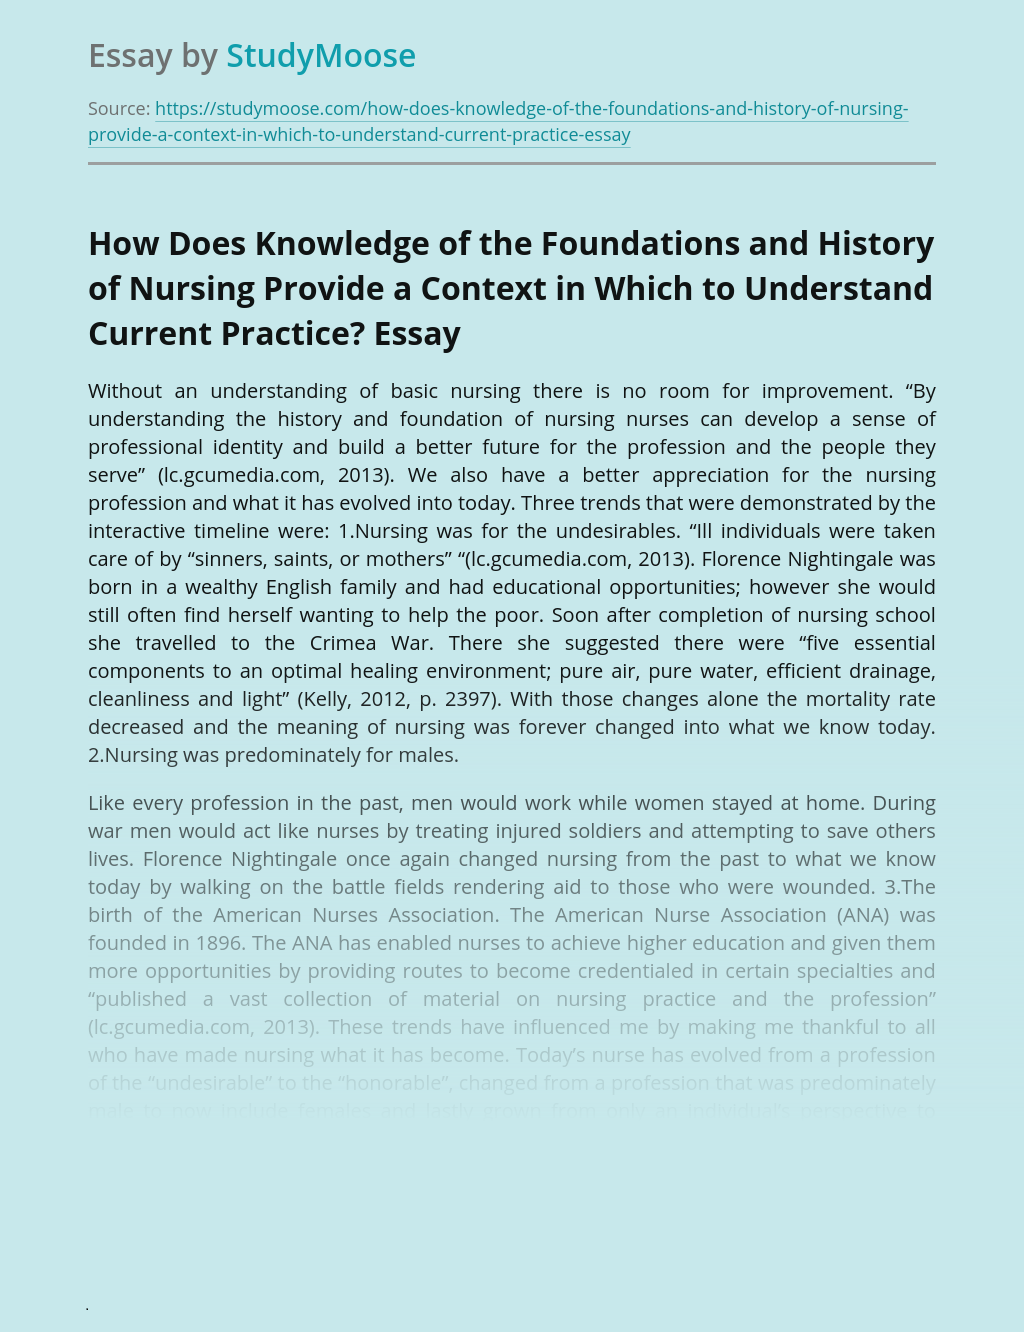 How Does Knowledge of the Foundations and History of Nursing Provide a Context in Which to Understand Current Practice?